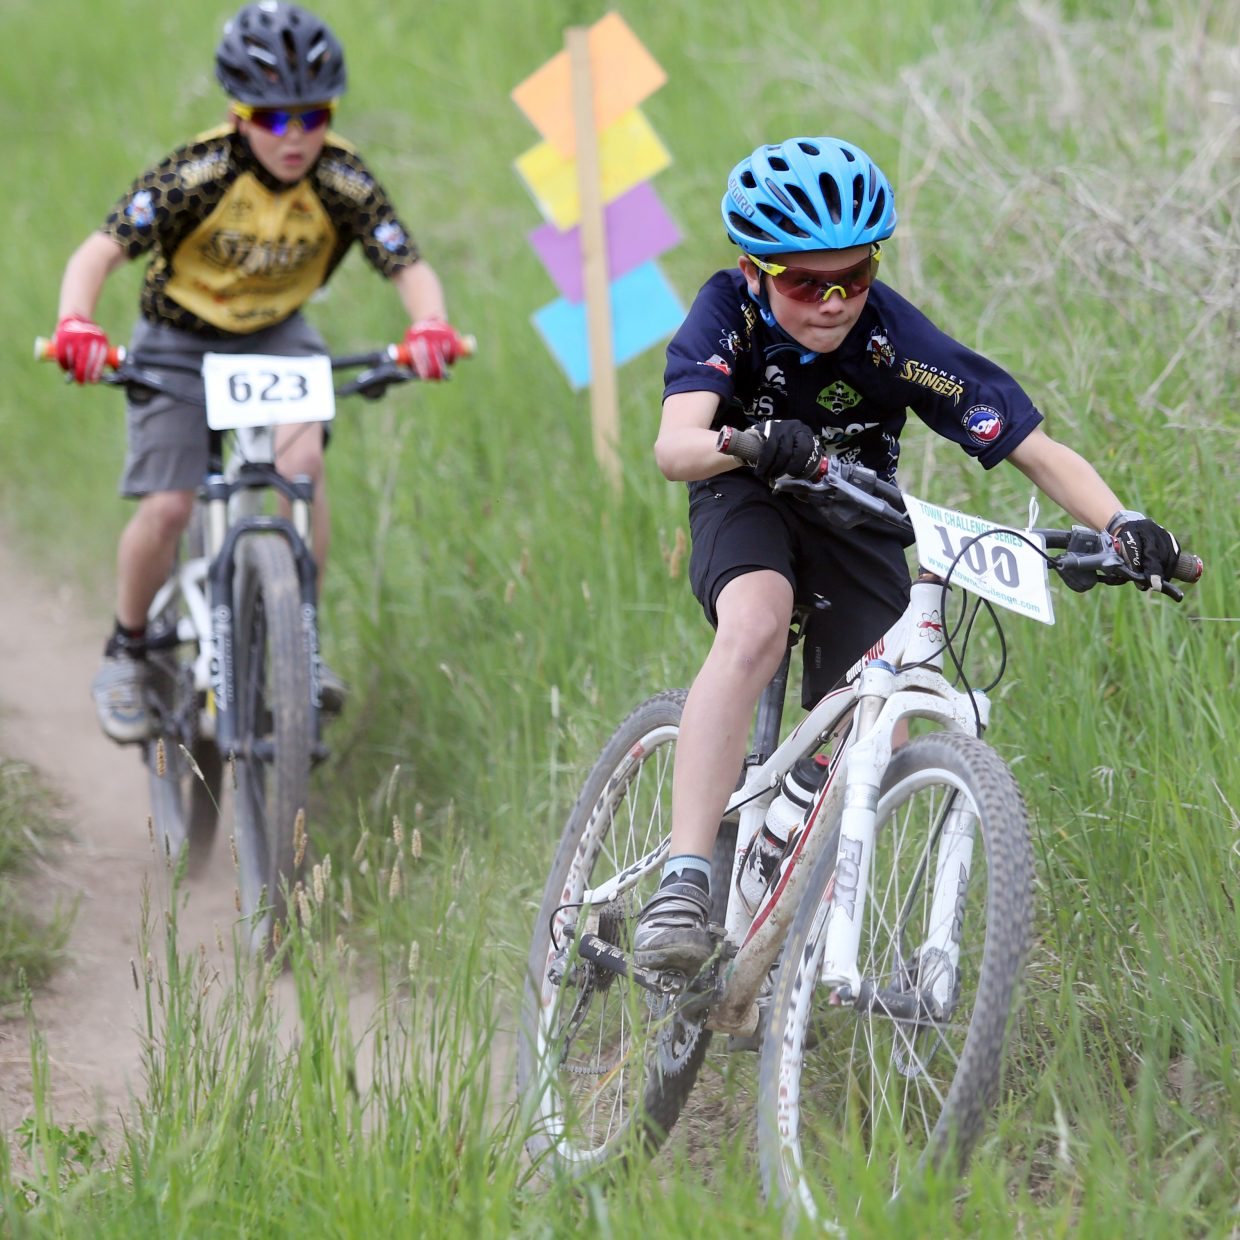 Chase High, front, and Bennett Gamber compete in the Marabou XC Town Challenge race on Wednesday, June 10, 2015, at Marabou Ranch.